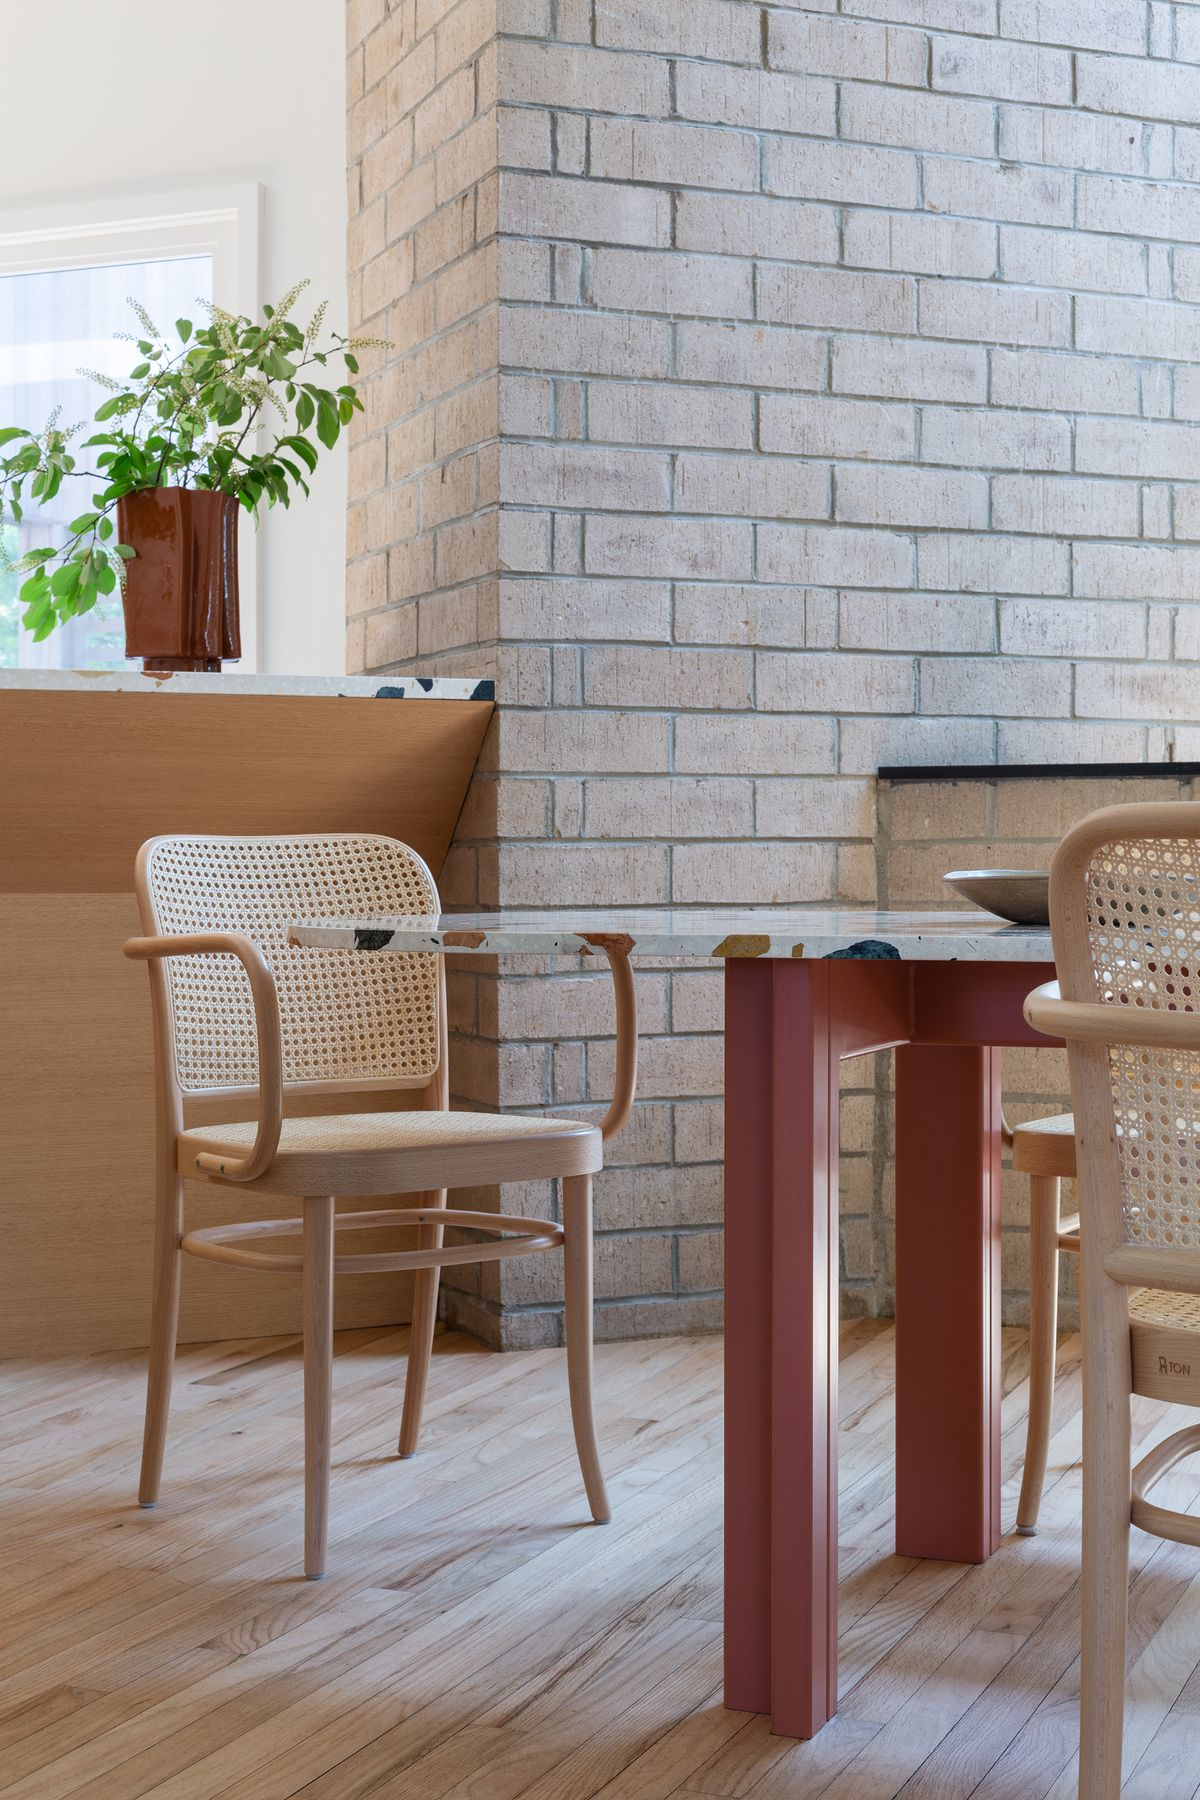 A dining area with pale wood chairs with woven back and rounded arm chairs. A table with terrazzo surface and rust red legs sits in front of a brick fireplace.